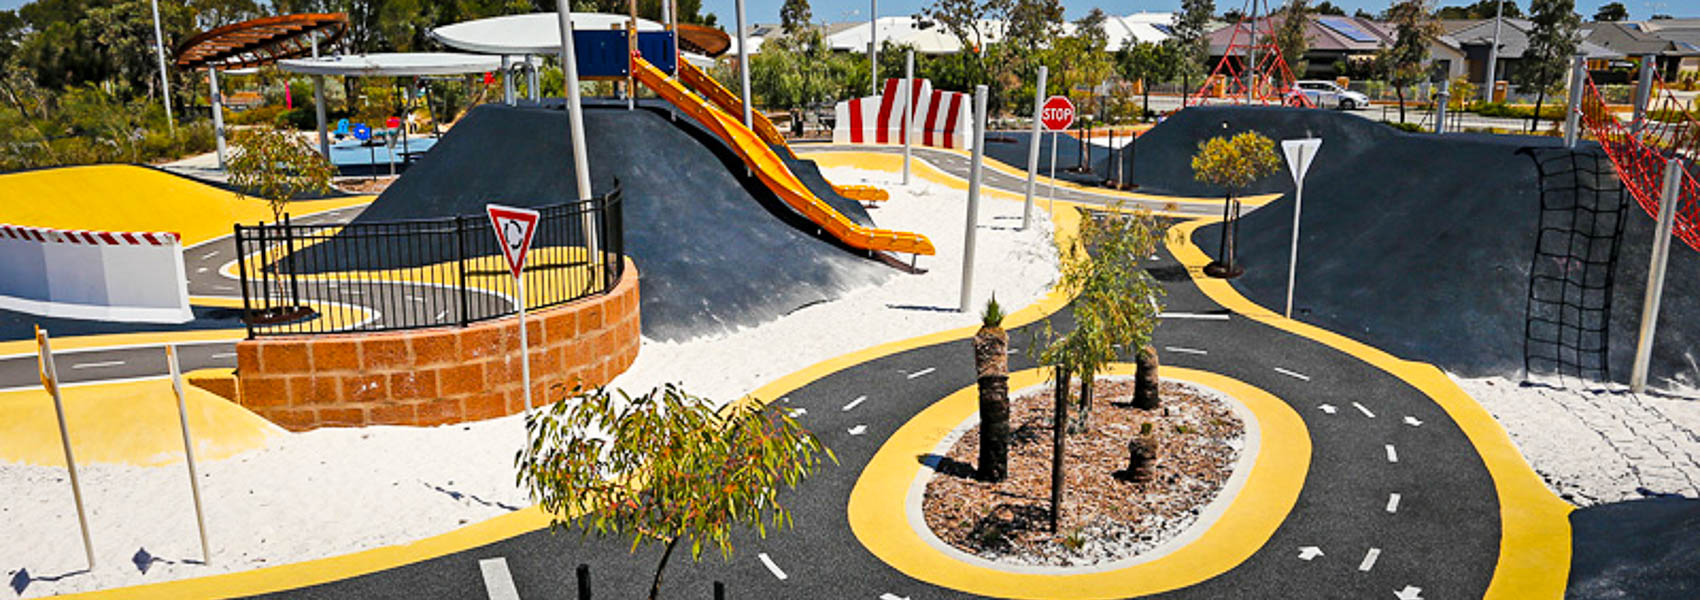 The Pitstop Park in Banksia Grove is great for kids learning to ride a bike